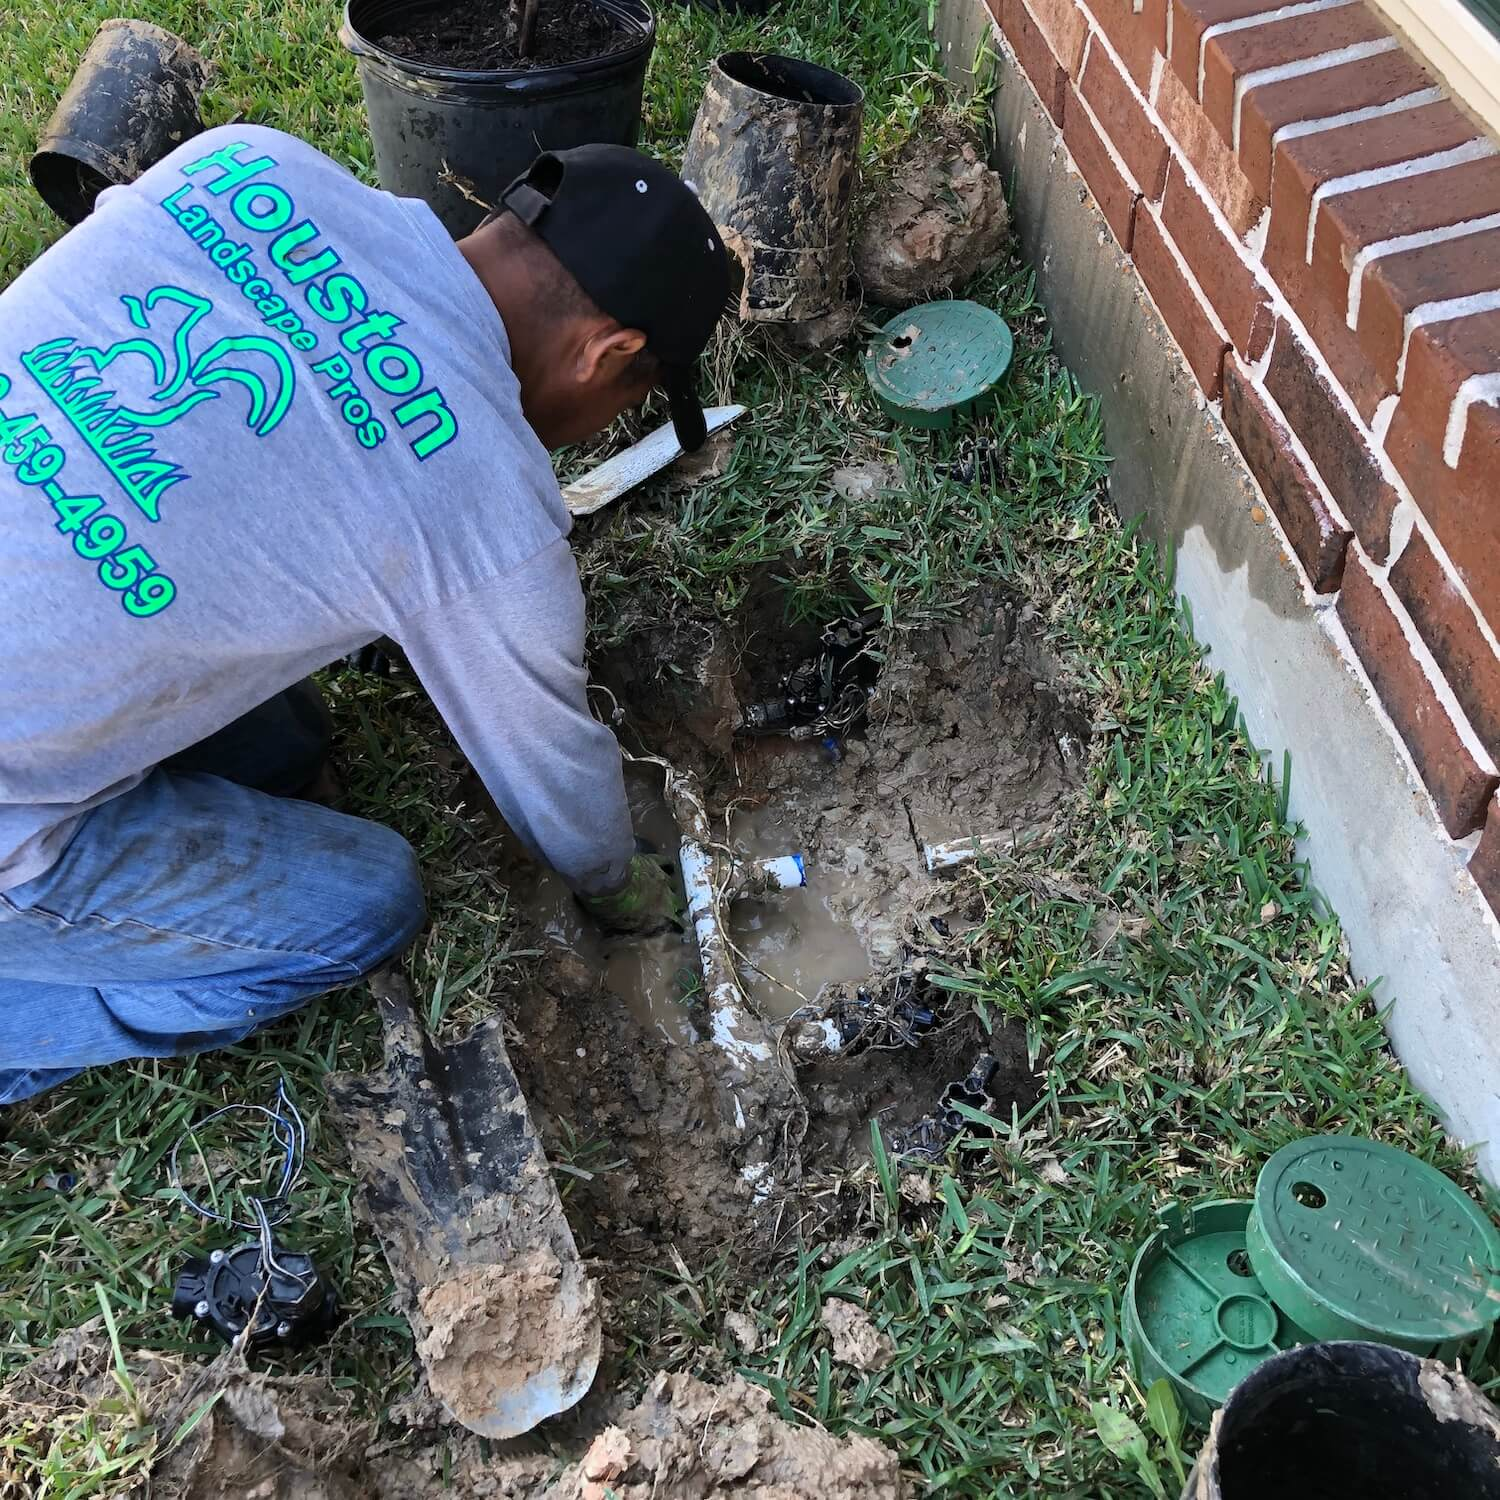 Sprinkler Repair Houston Landscape Pros- 77024